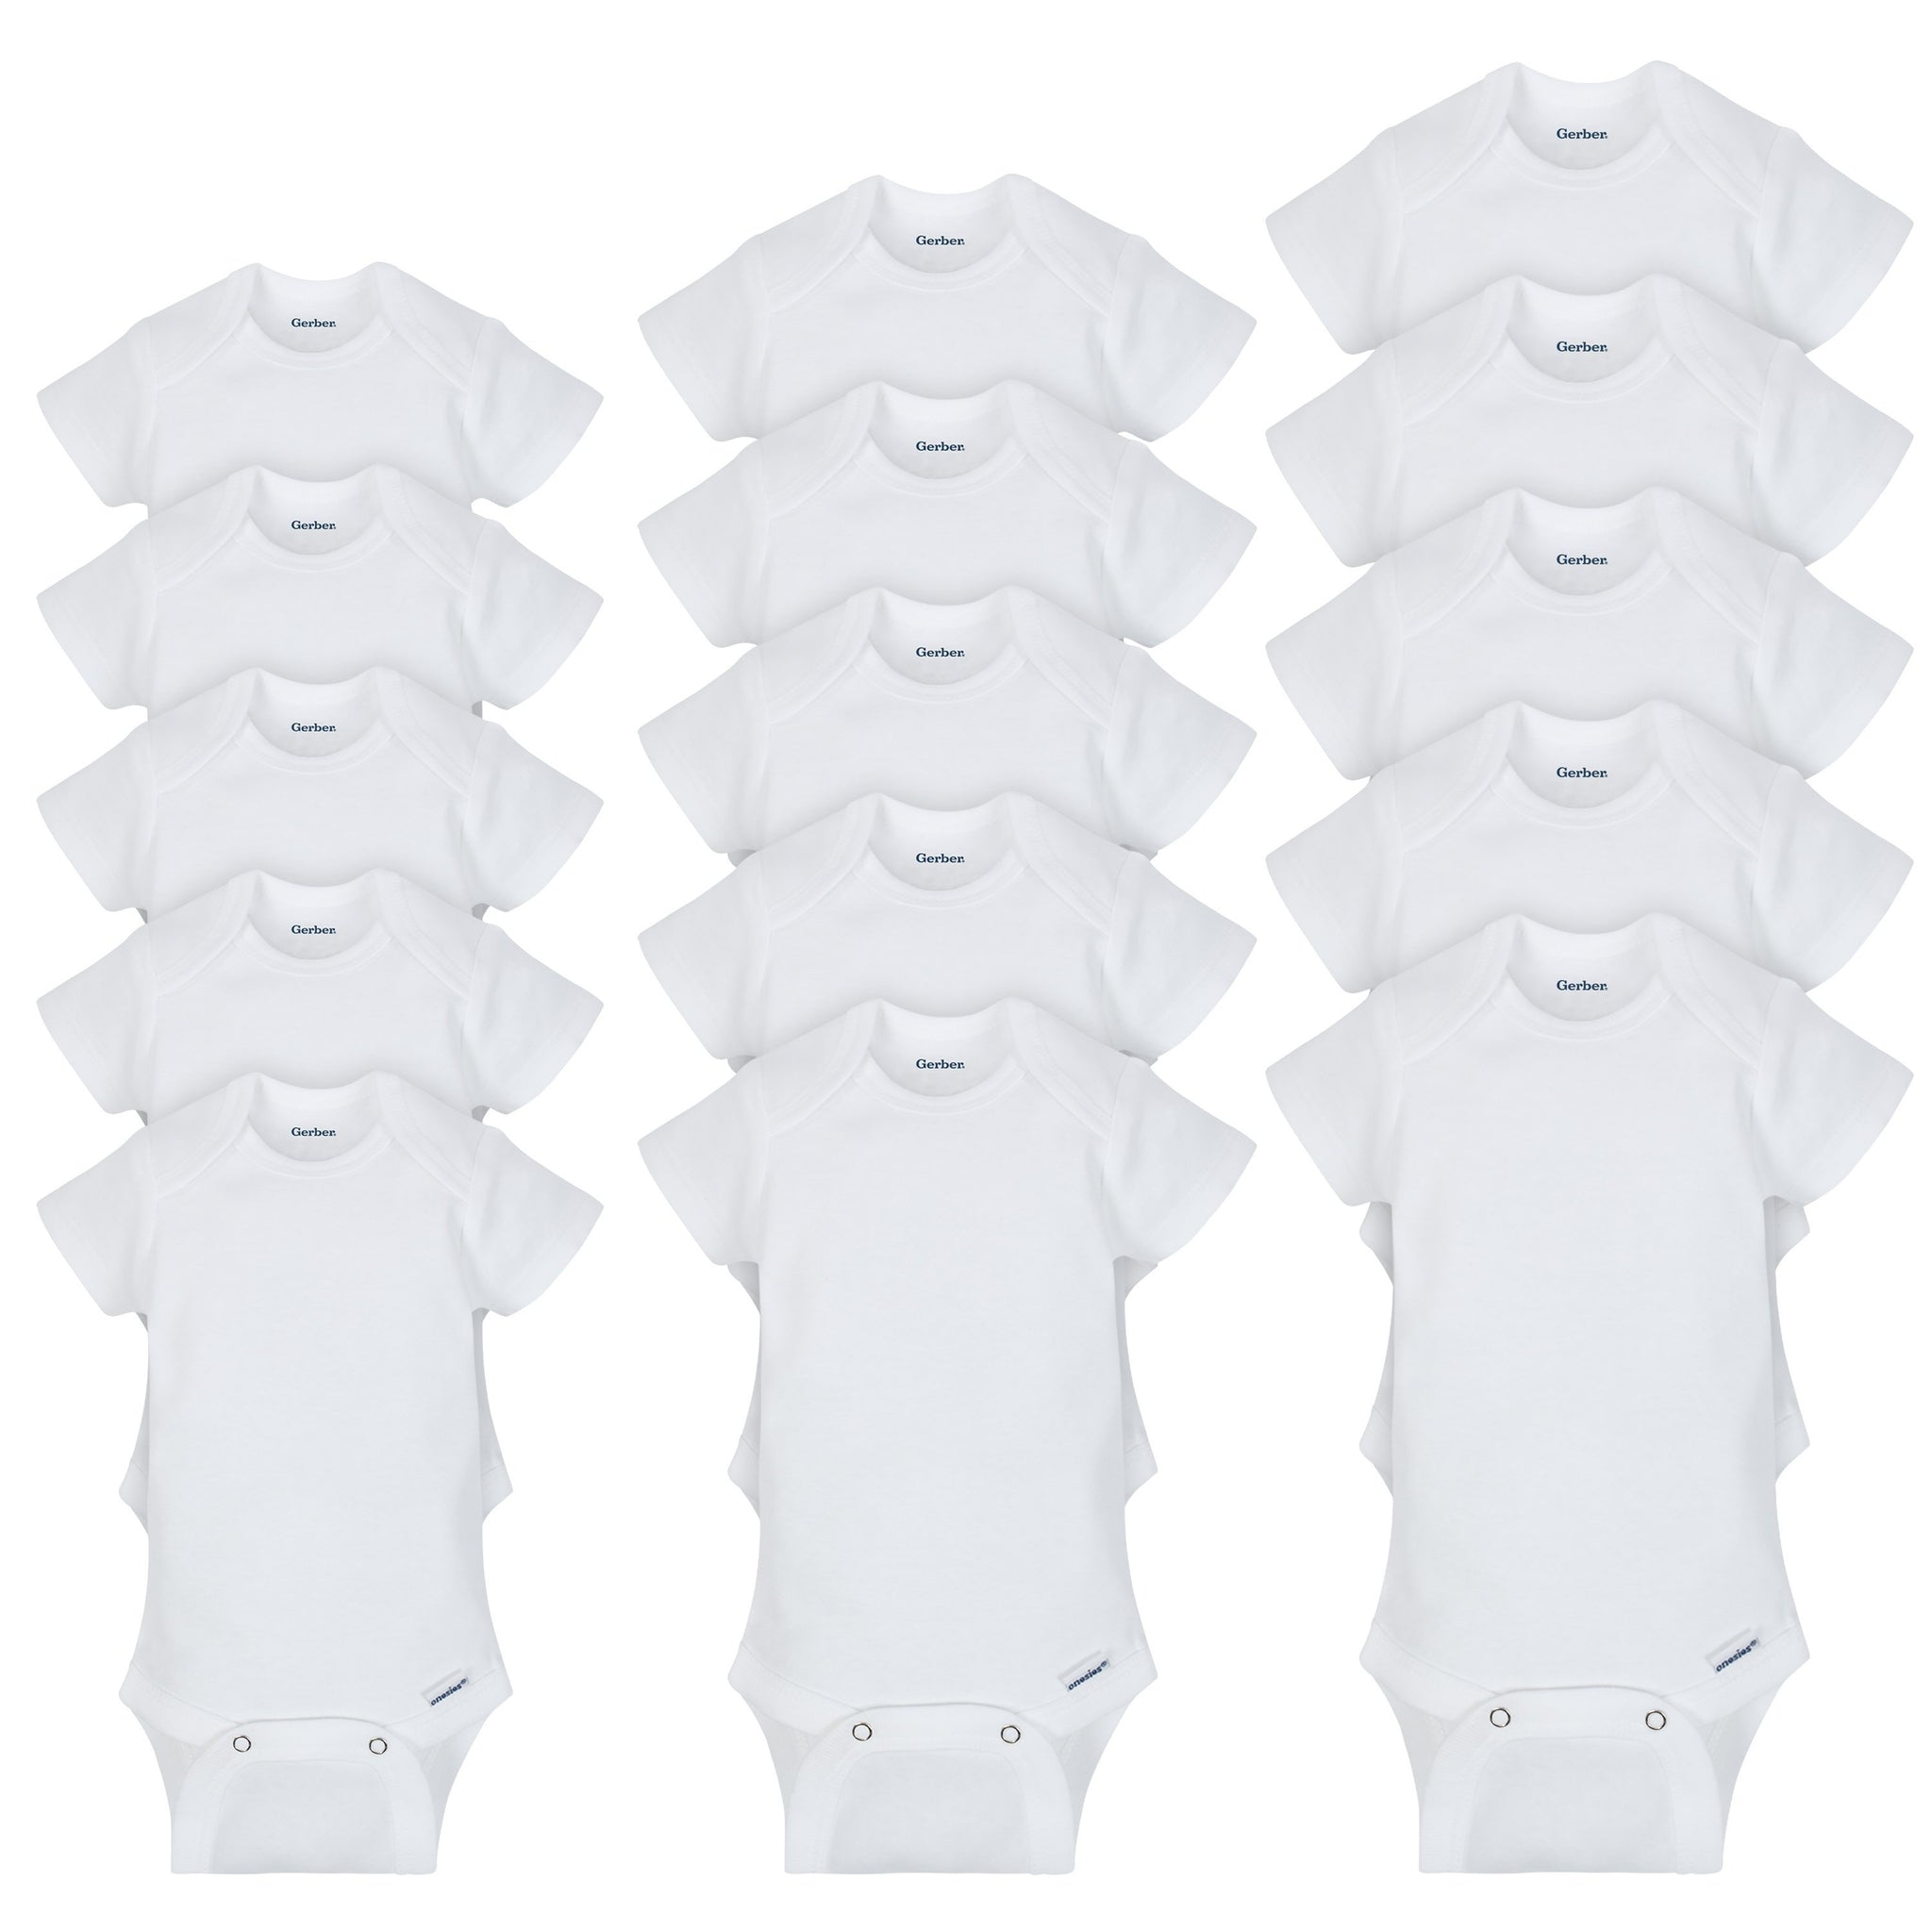 15-Pack Grow-With-Me White Onesies® Brand Short Sleeve Bodysuit Assorted Size Set